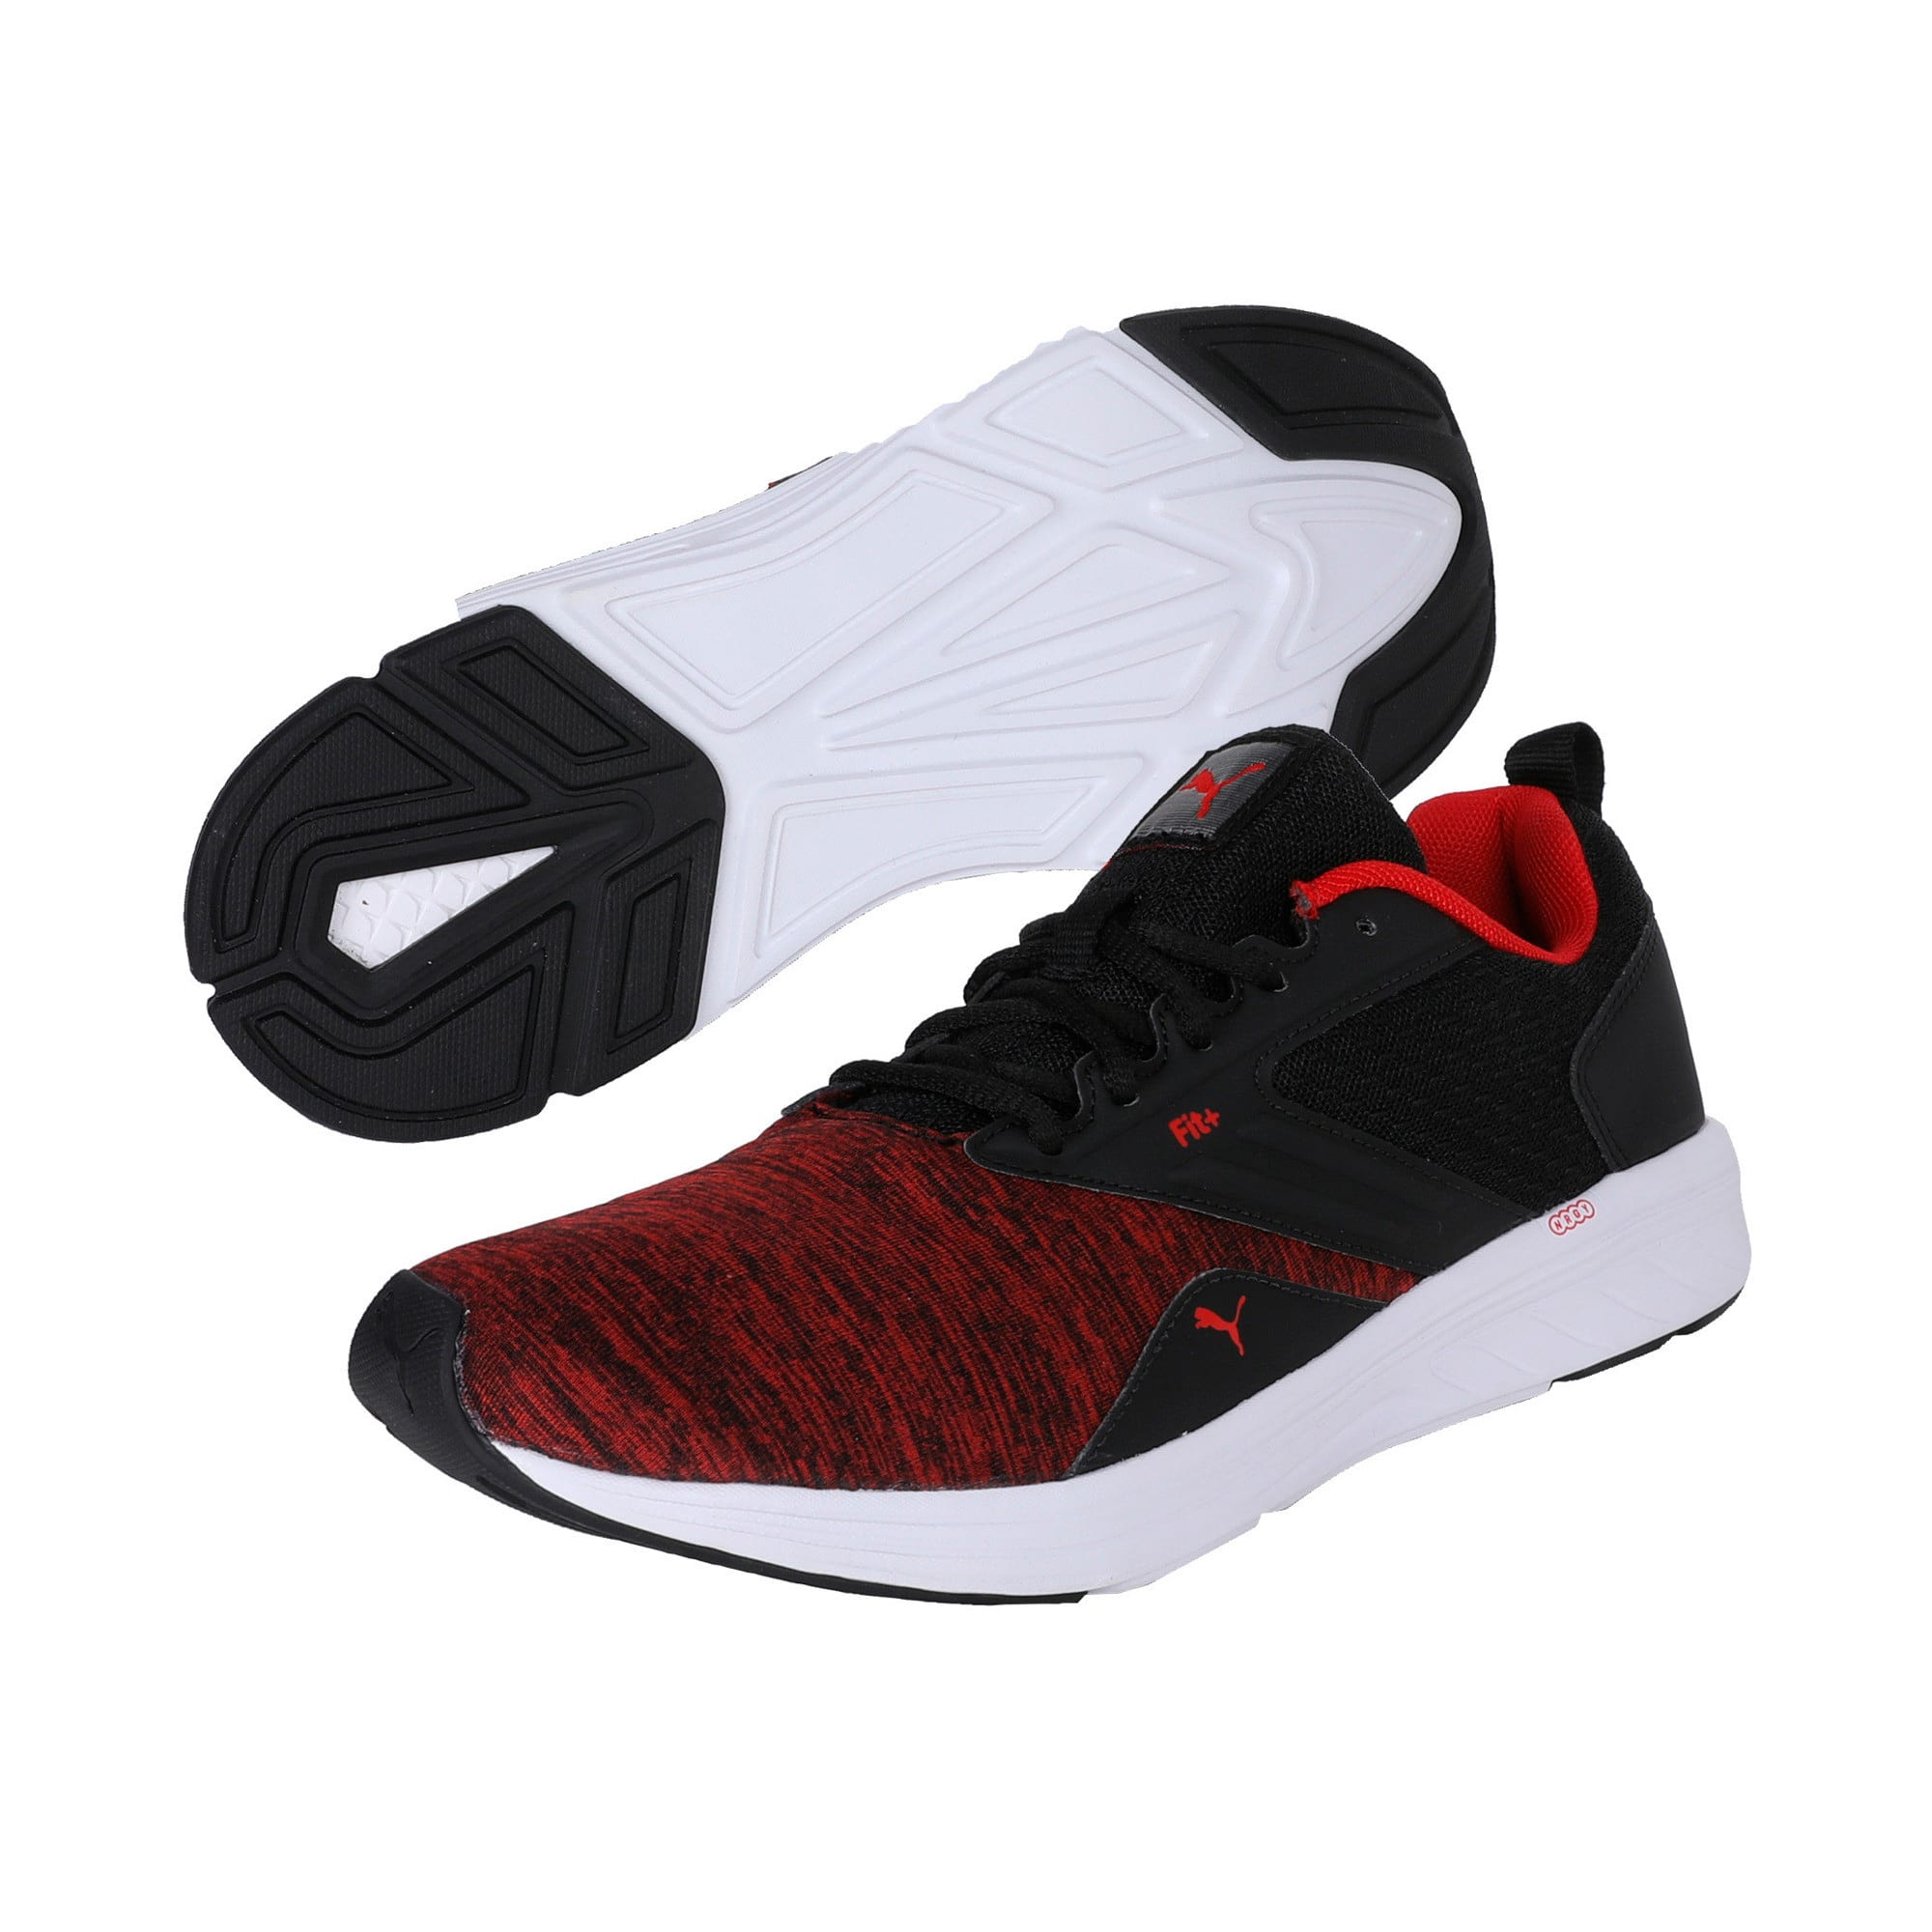 Thumbnail 2 of Comet IPD, Puma Black-High Risk Red, medium-IND